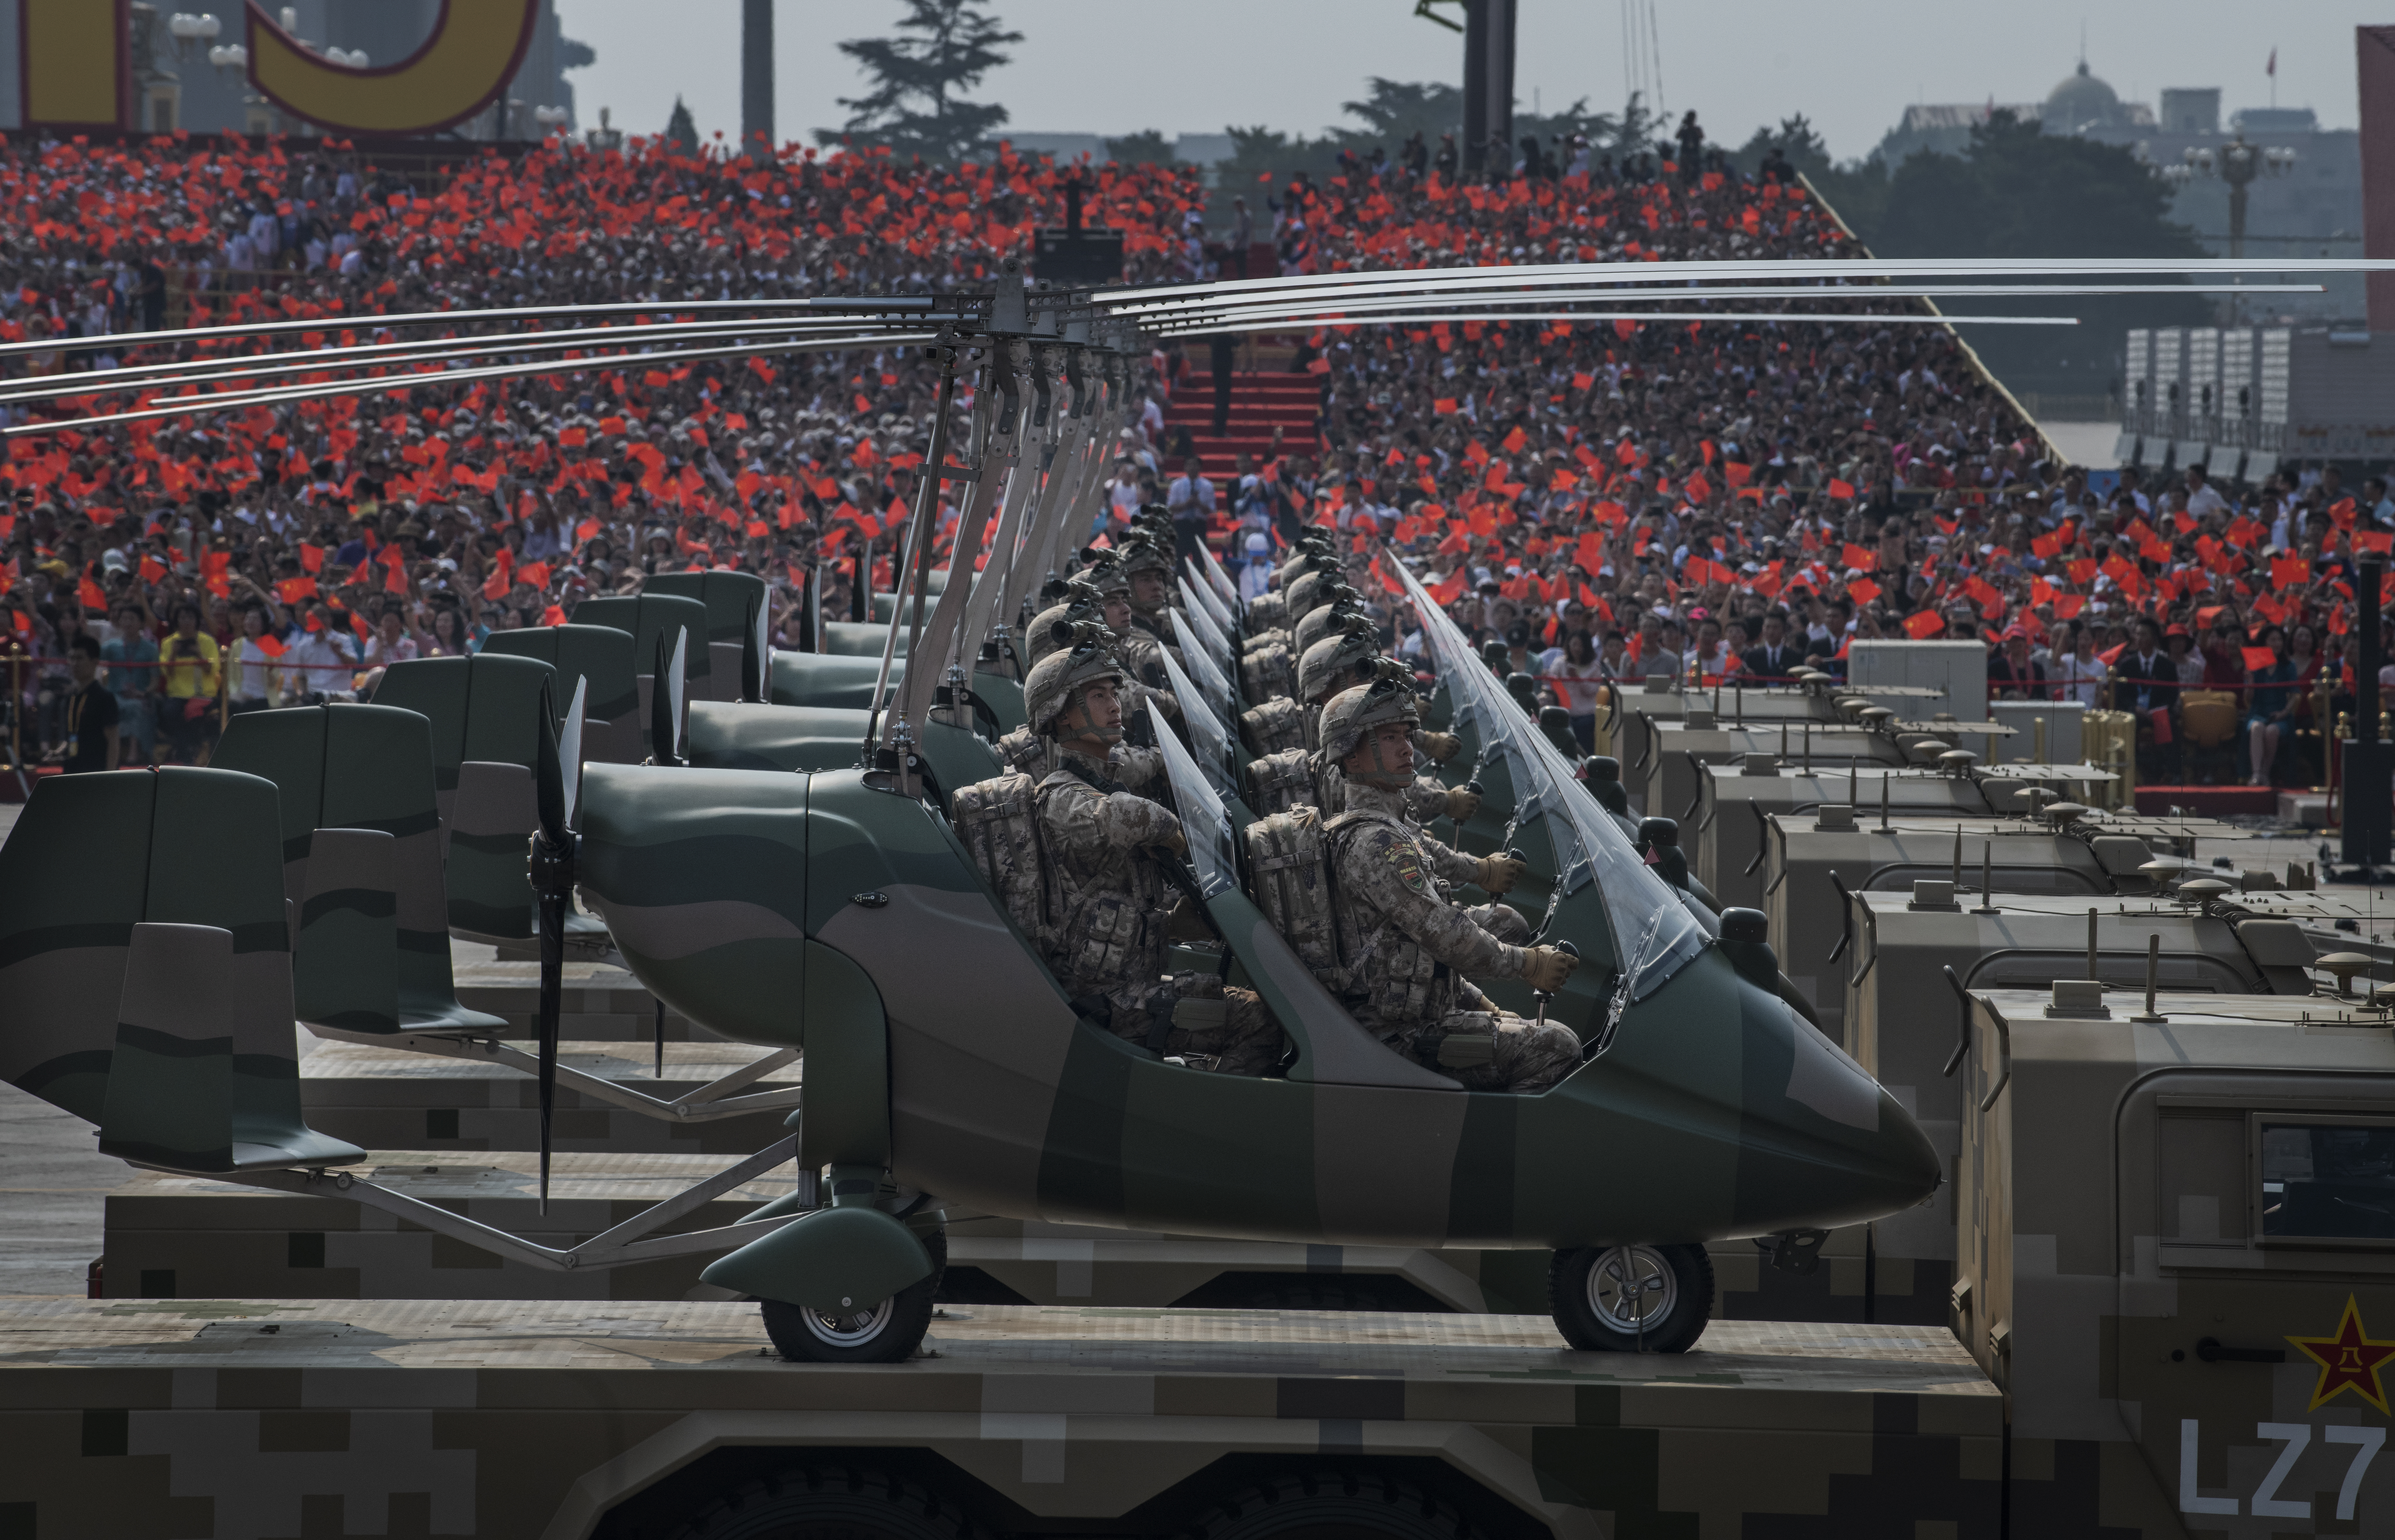 Chinese soldiers sit in small helicopters as they ride on trucks. (Kevin Frayer/Getty Images)